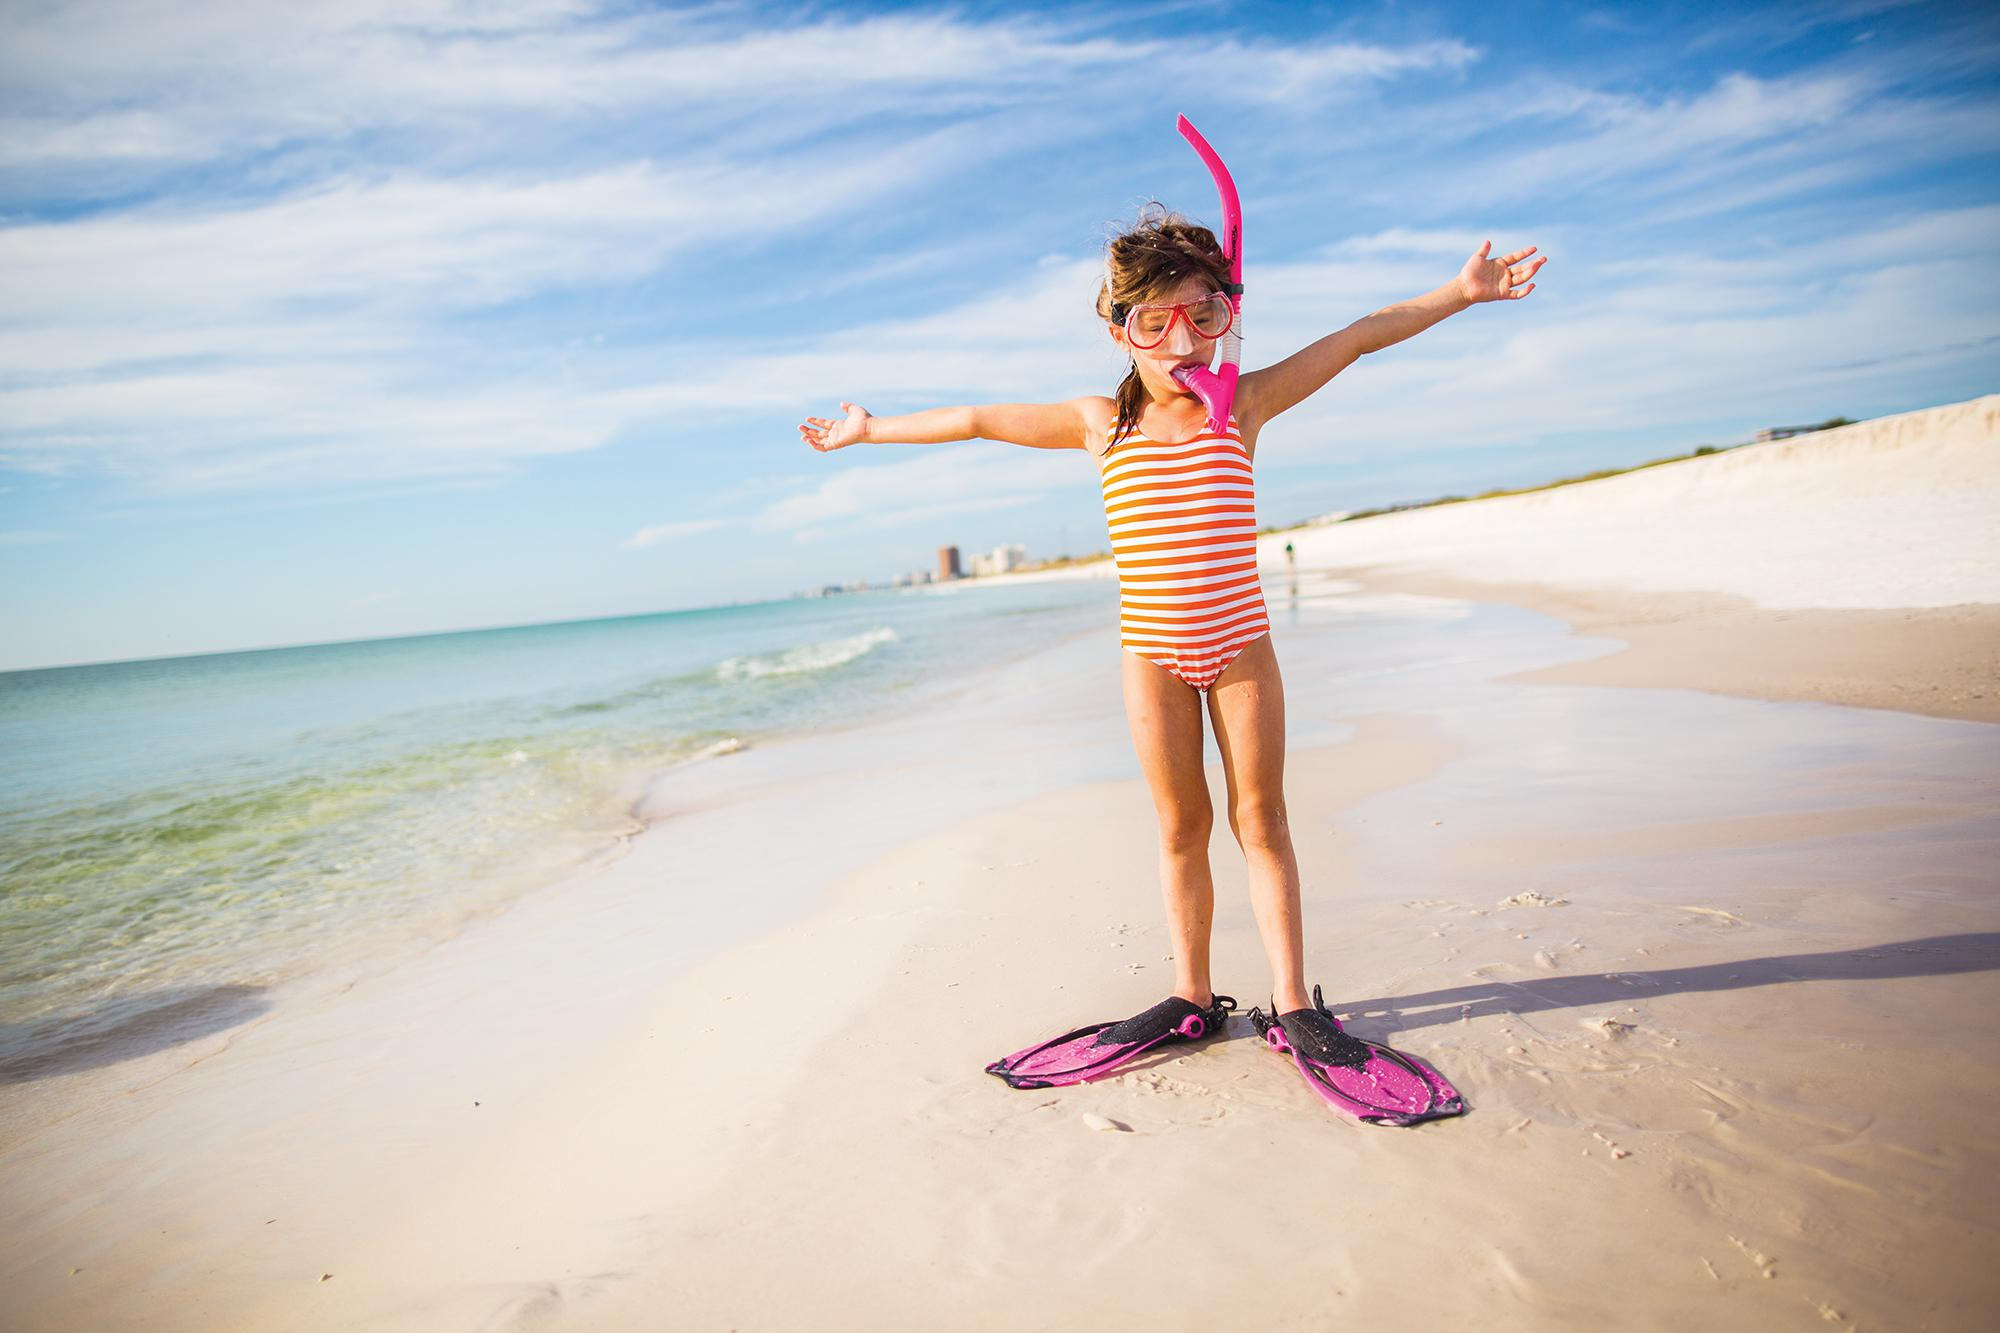 Grab some snorkel gear and check out the underwater world around St. Andrews State Park.